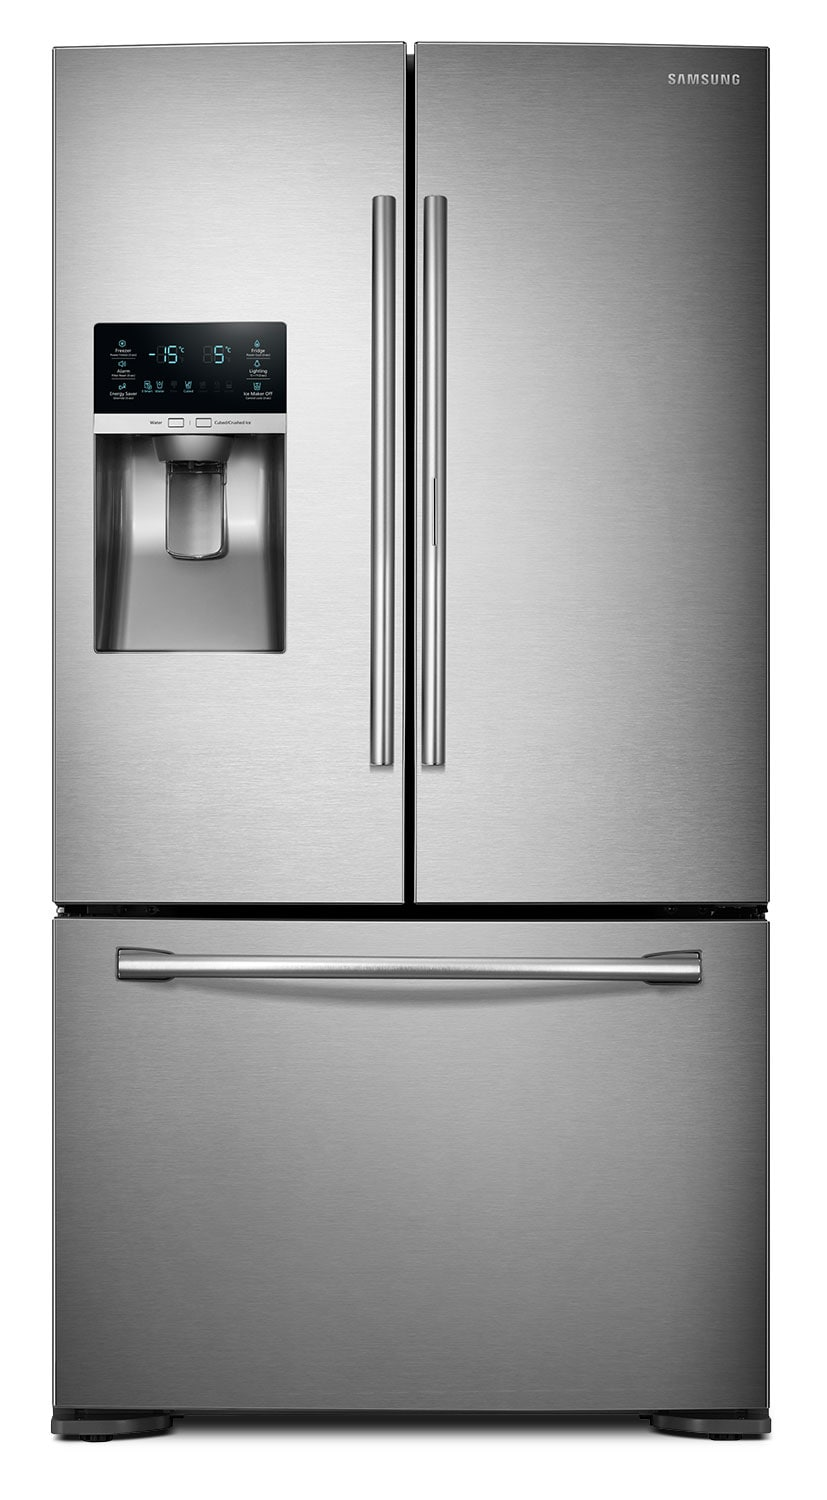 Refrigerators and Freezers - Samsung Stainless Steel Counter-Depth French Door Refrigerator (22.5 Cu. Ft.) - RF23HTEDBSR